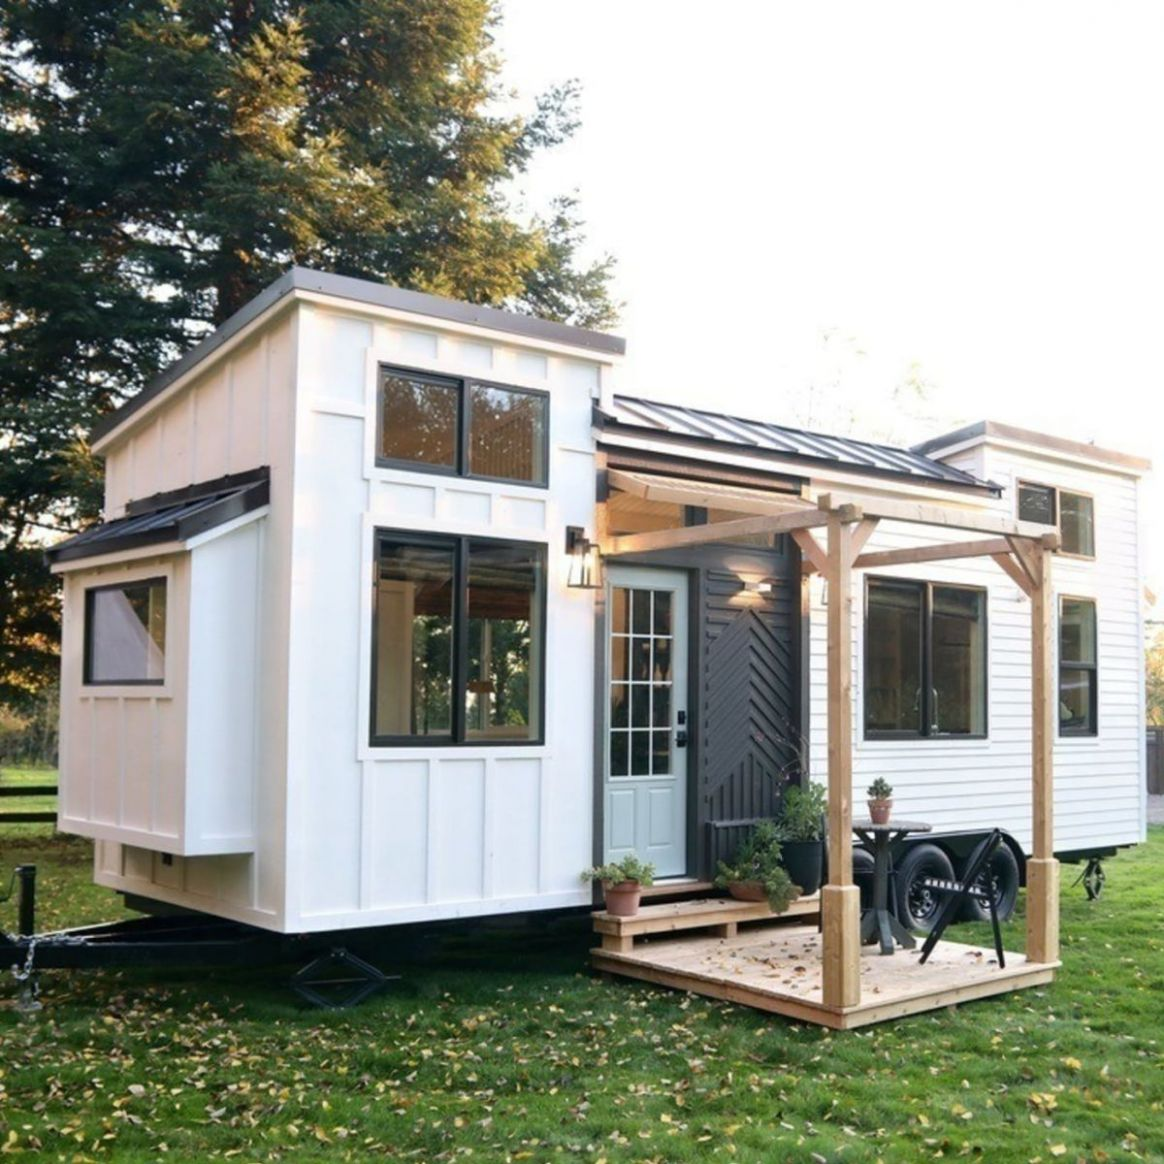 Pacific Harmony - Tiny House for Sale in Battle Ground, Washington - Tiny  House Listings - tiny house listings